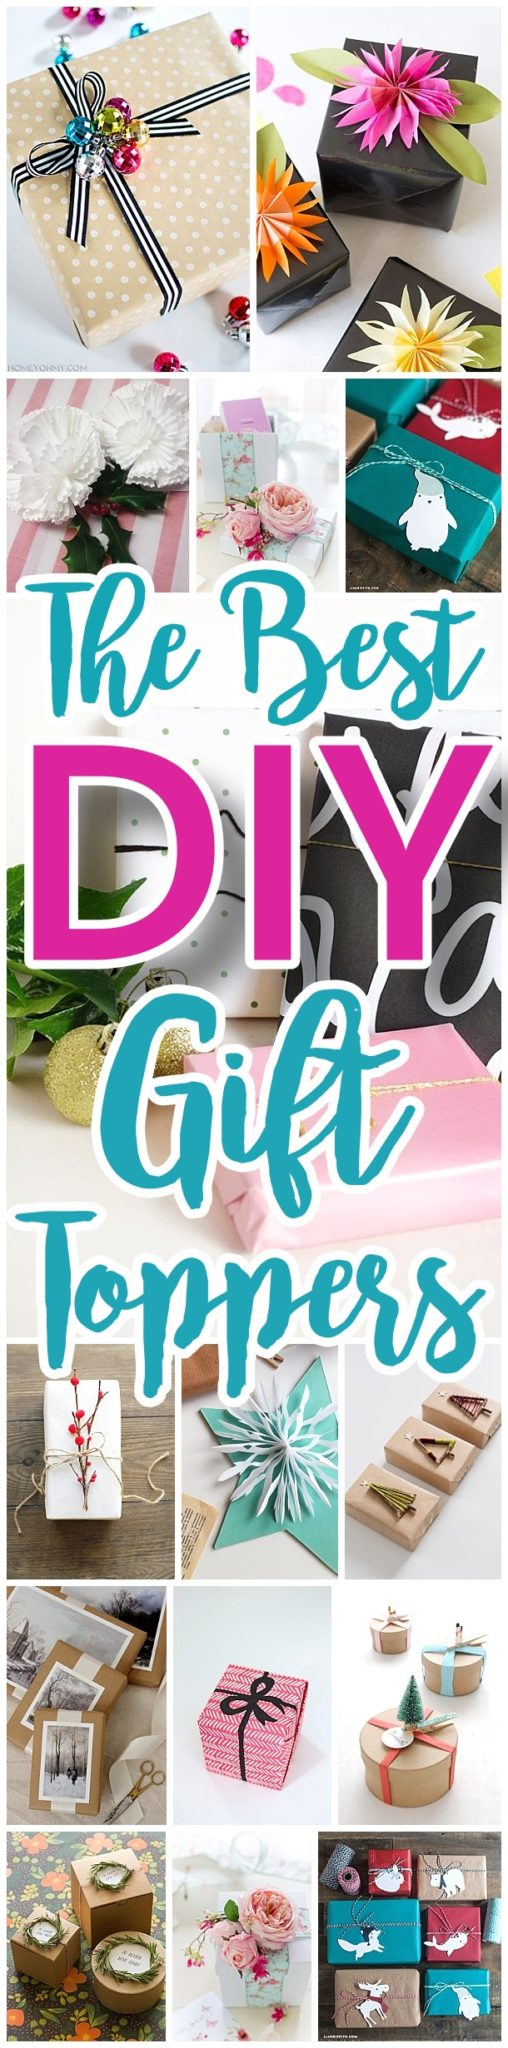 Do it Yourself Gift Toppers Tutorials - Fun, inexpensive and easy handmade ideas to wrap those gifts and give them a personal touch for Christmas Birthdays Holidays and more! #diygifttoppers #DIYGiftwrapping #diygiftwrap #gifttoppers #christmasgifttoppers #diychristmasgifttoppers #birthdaygifttoppers #diychristmasbows